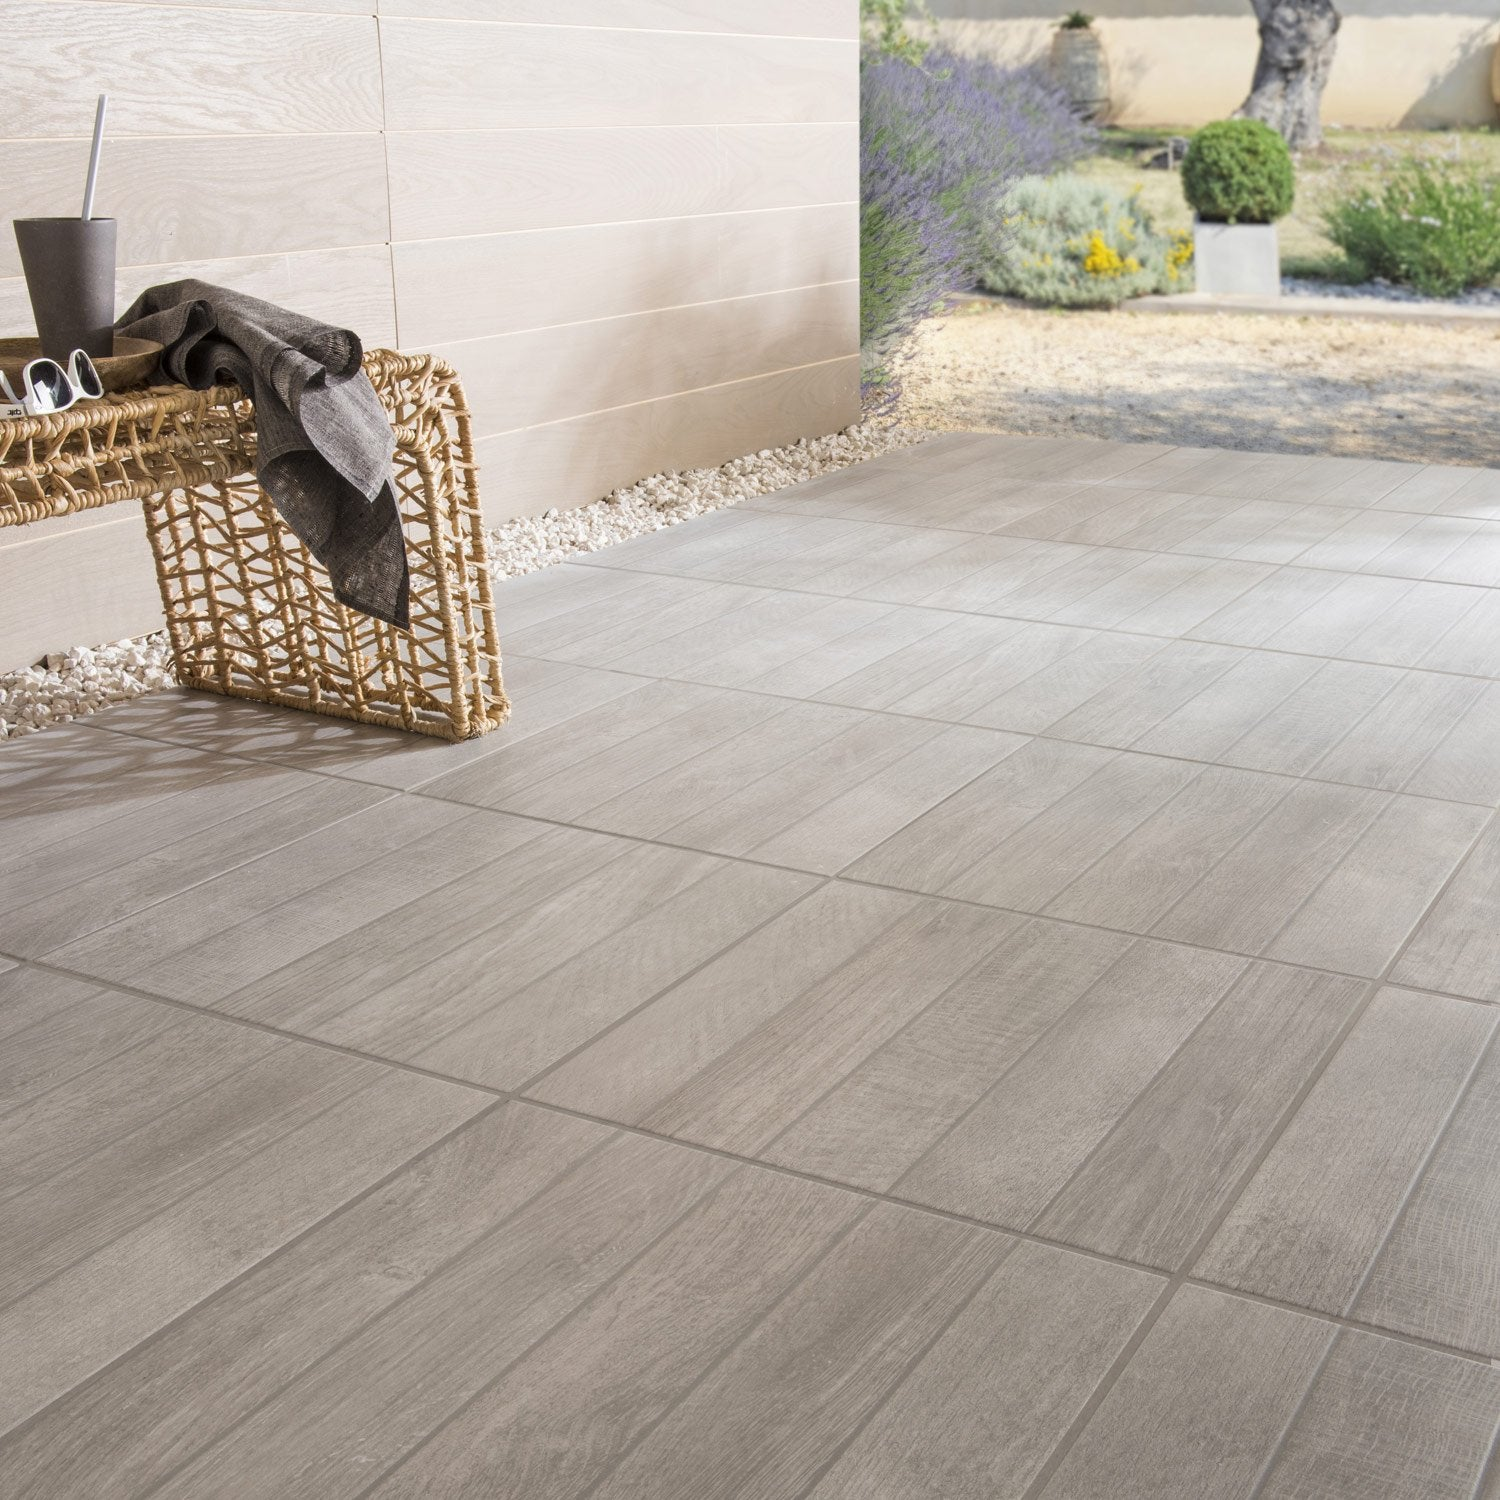 Carrelage sol gris effet bois jungle x cm for Carrelage sol gris